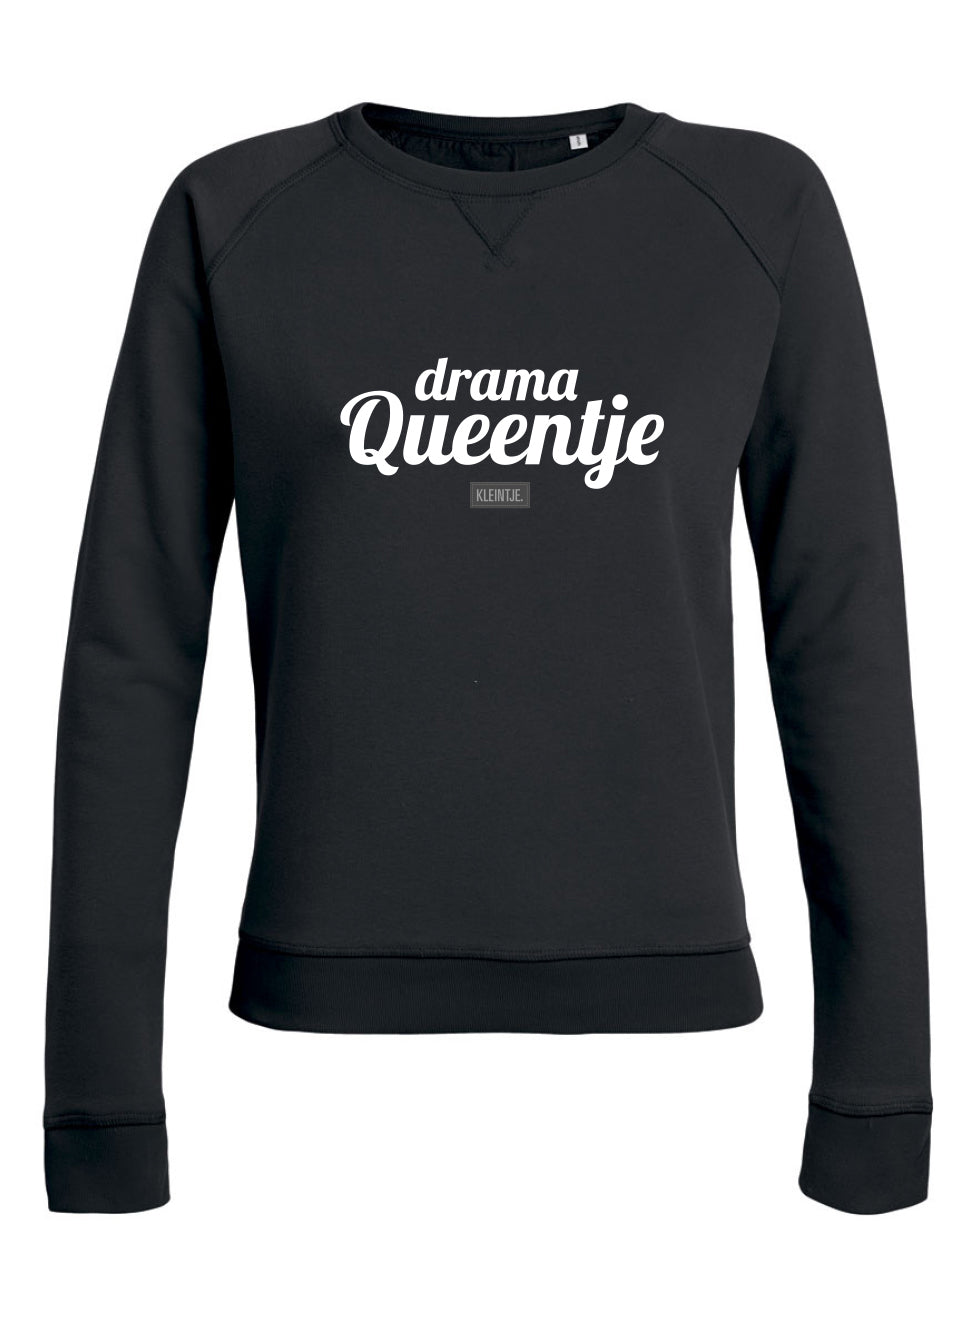 'Drama Queentje' Dames Sweater